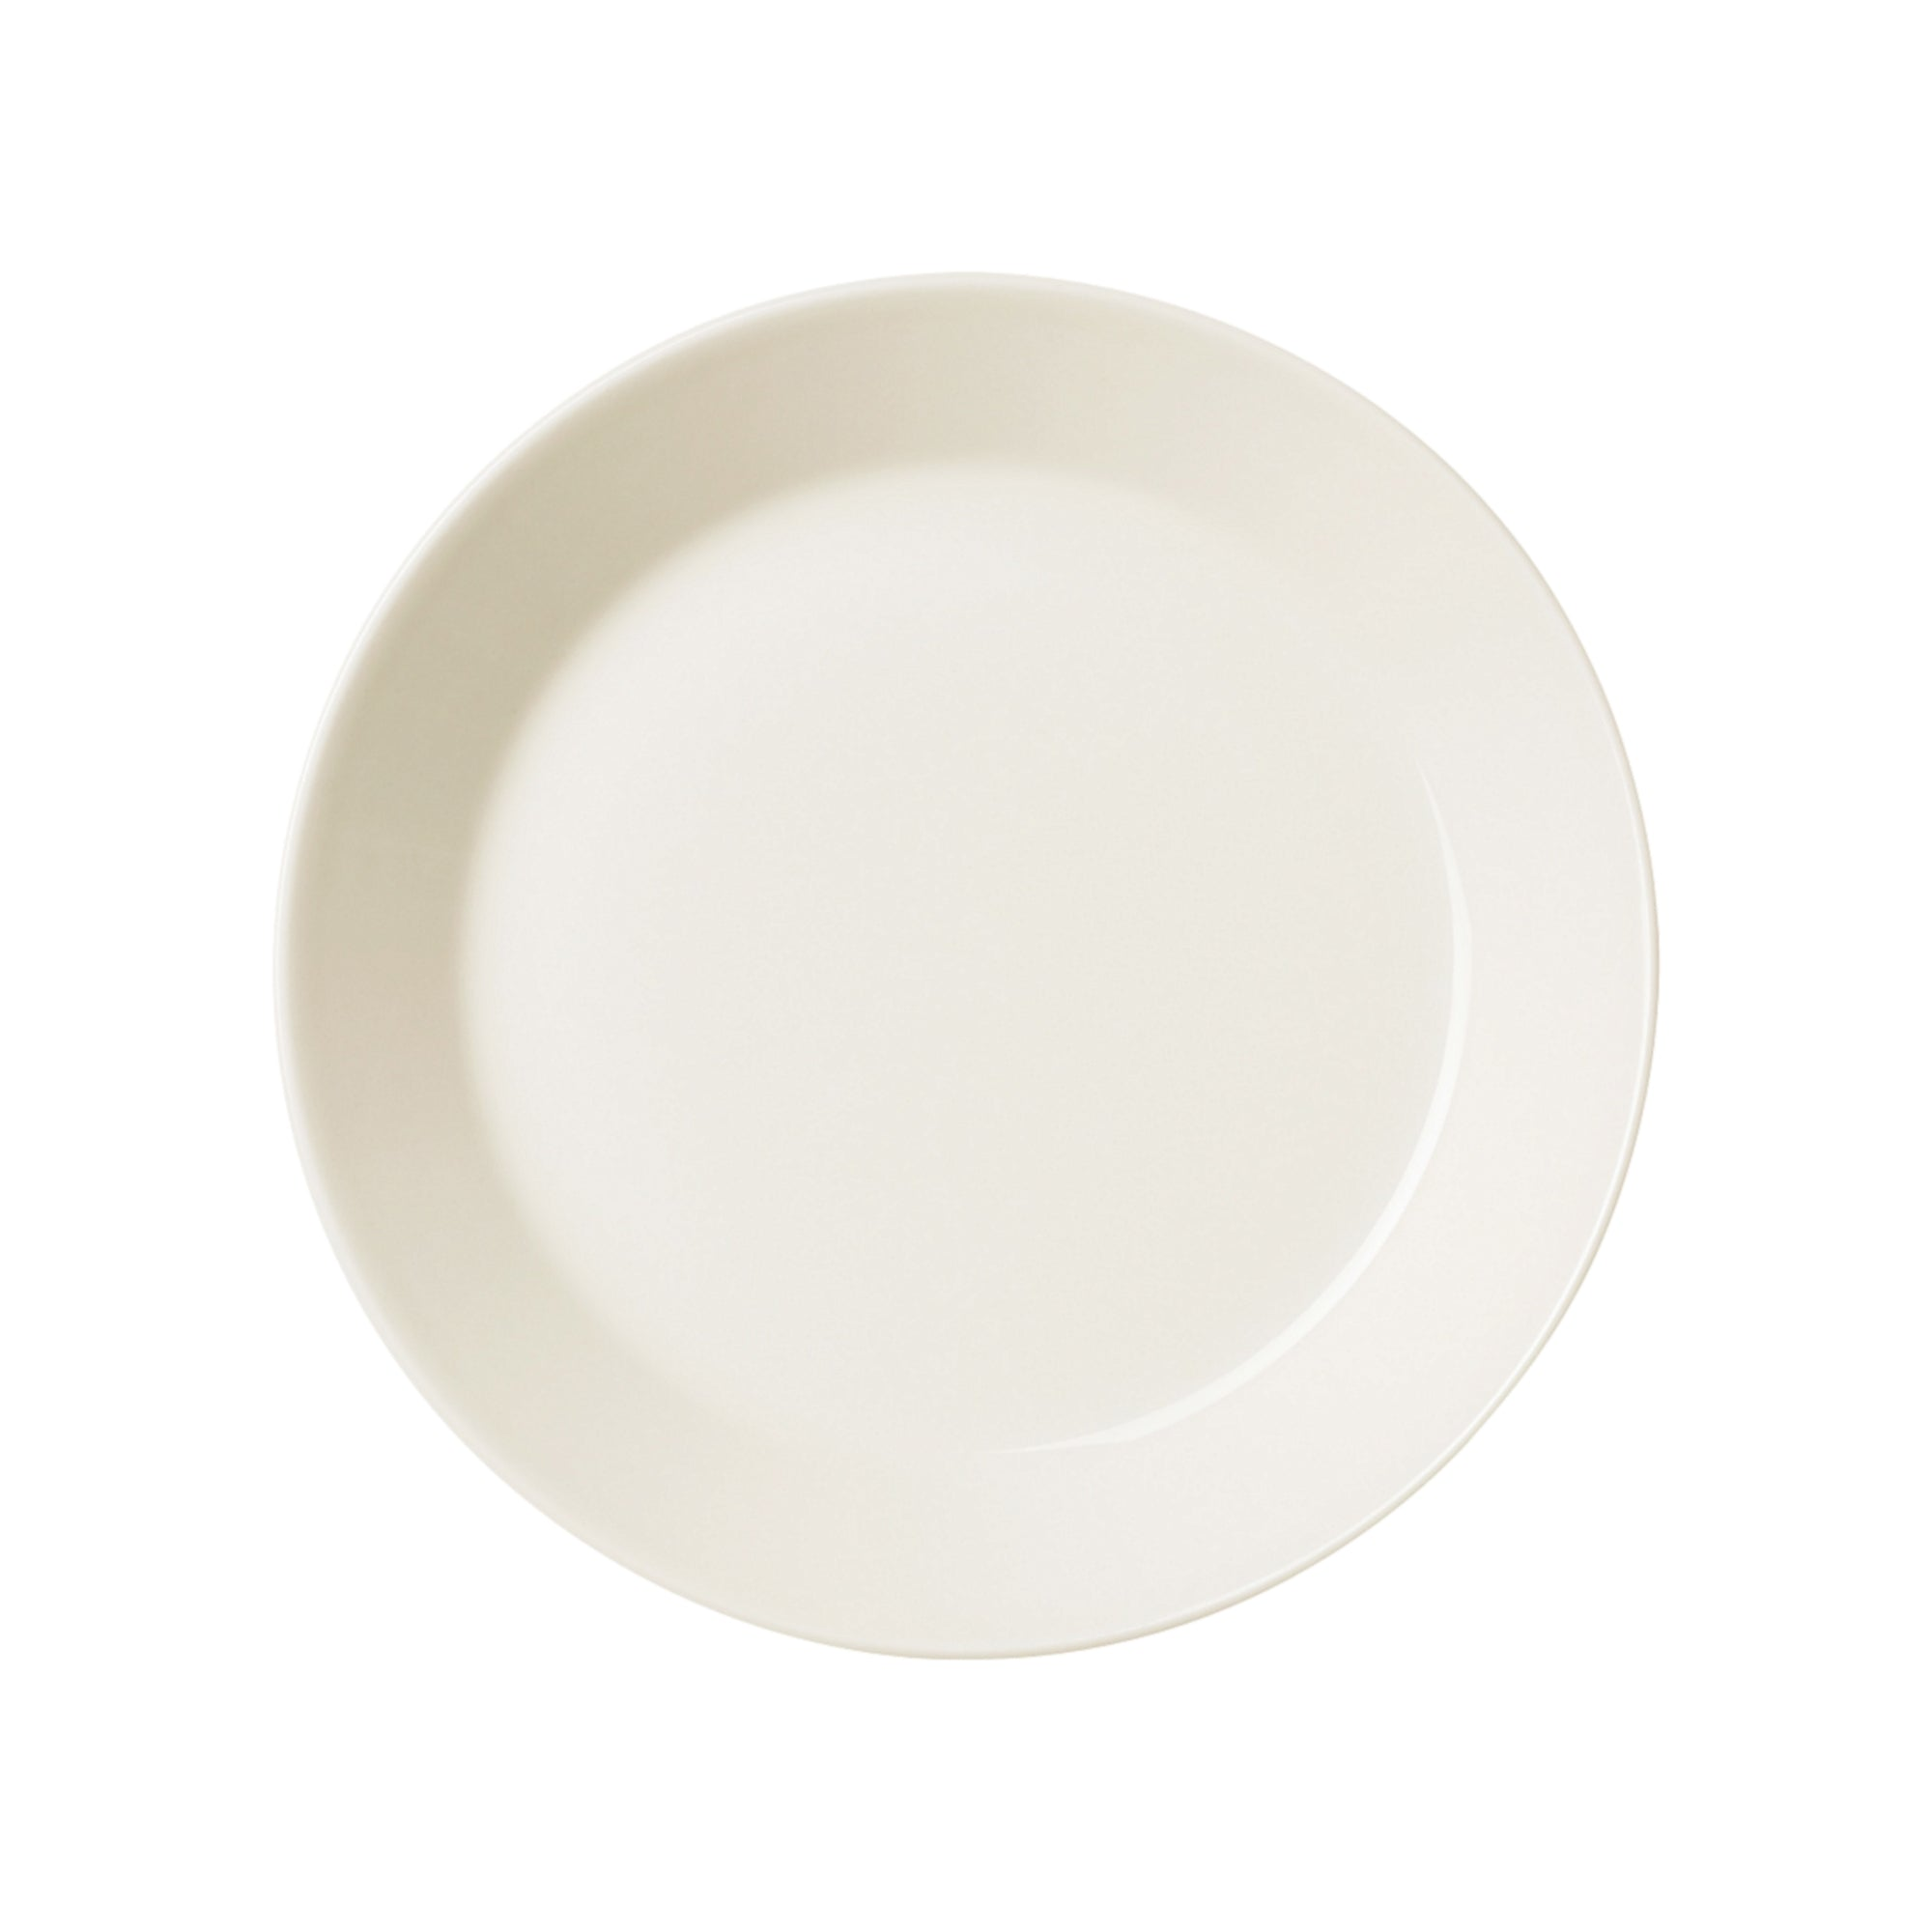 Teema plate 17 cm Bread and butter plate 6.75""